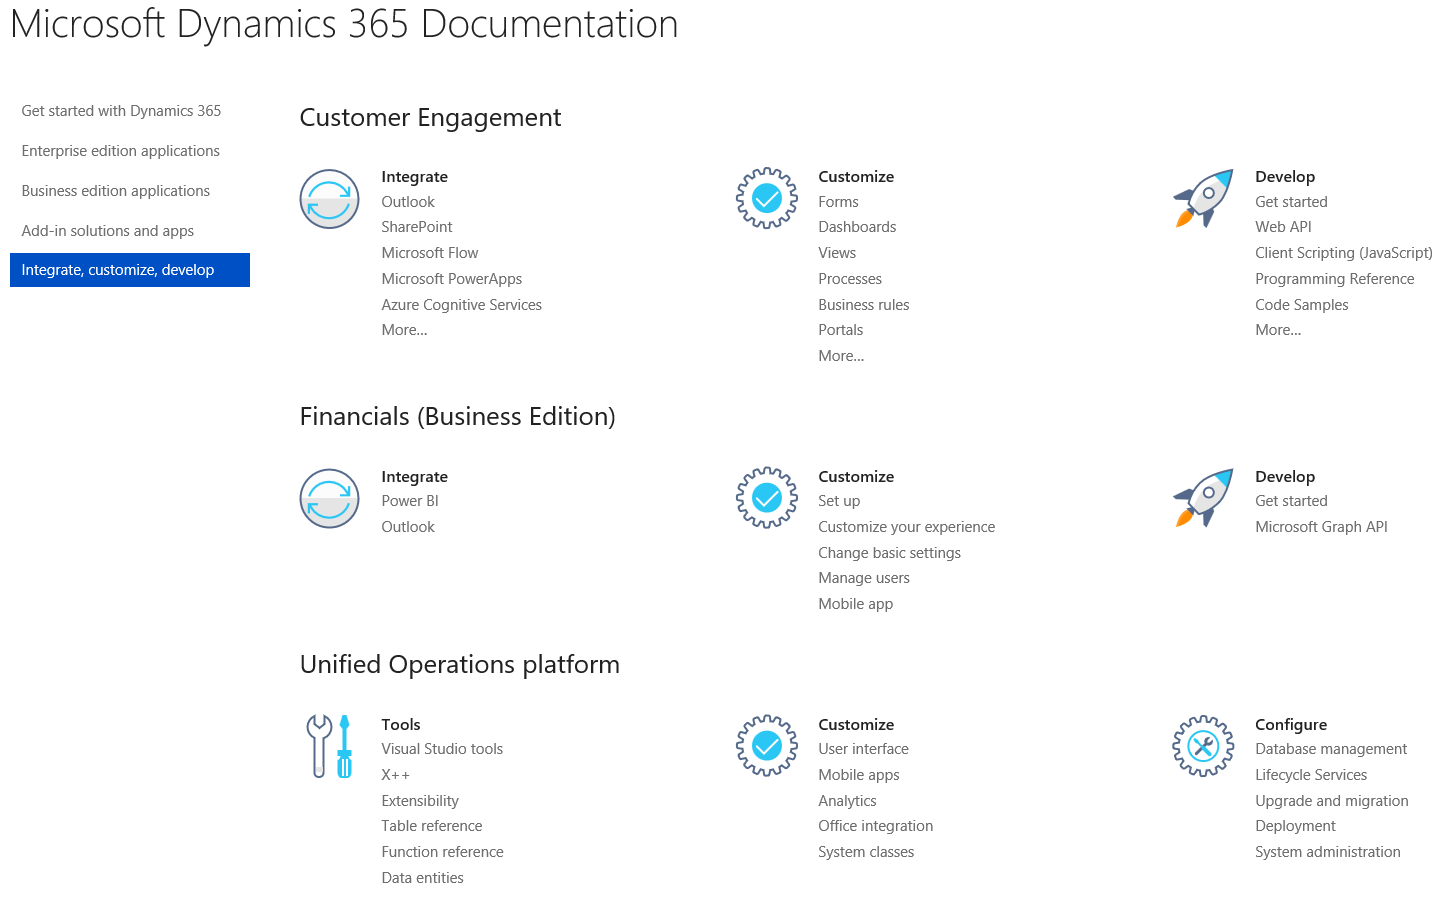 New documentation site for Dynamics 365! - Dynamics 365 Blog